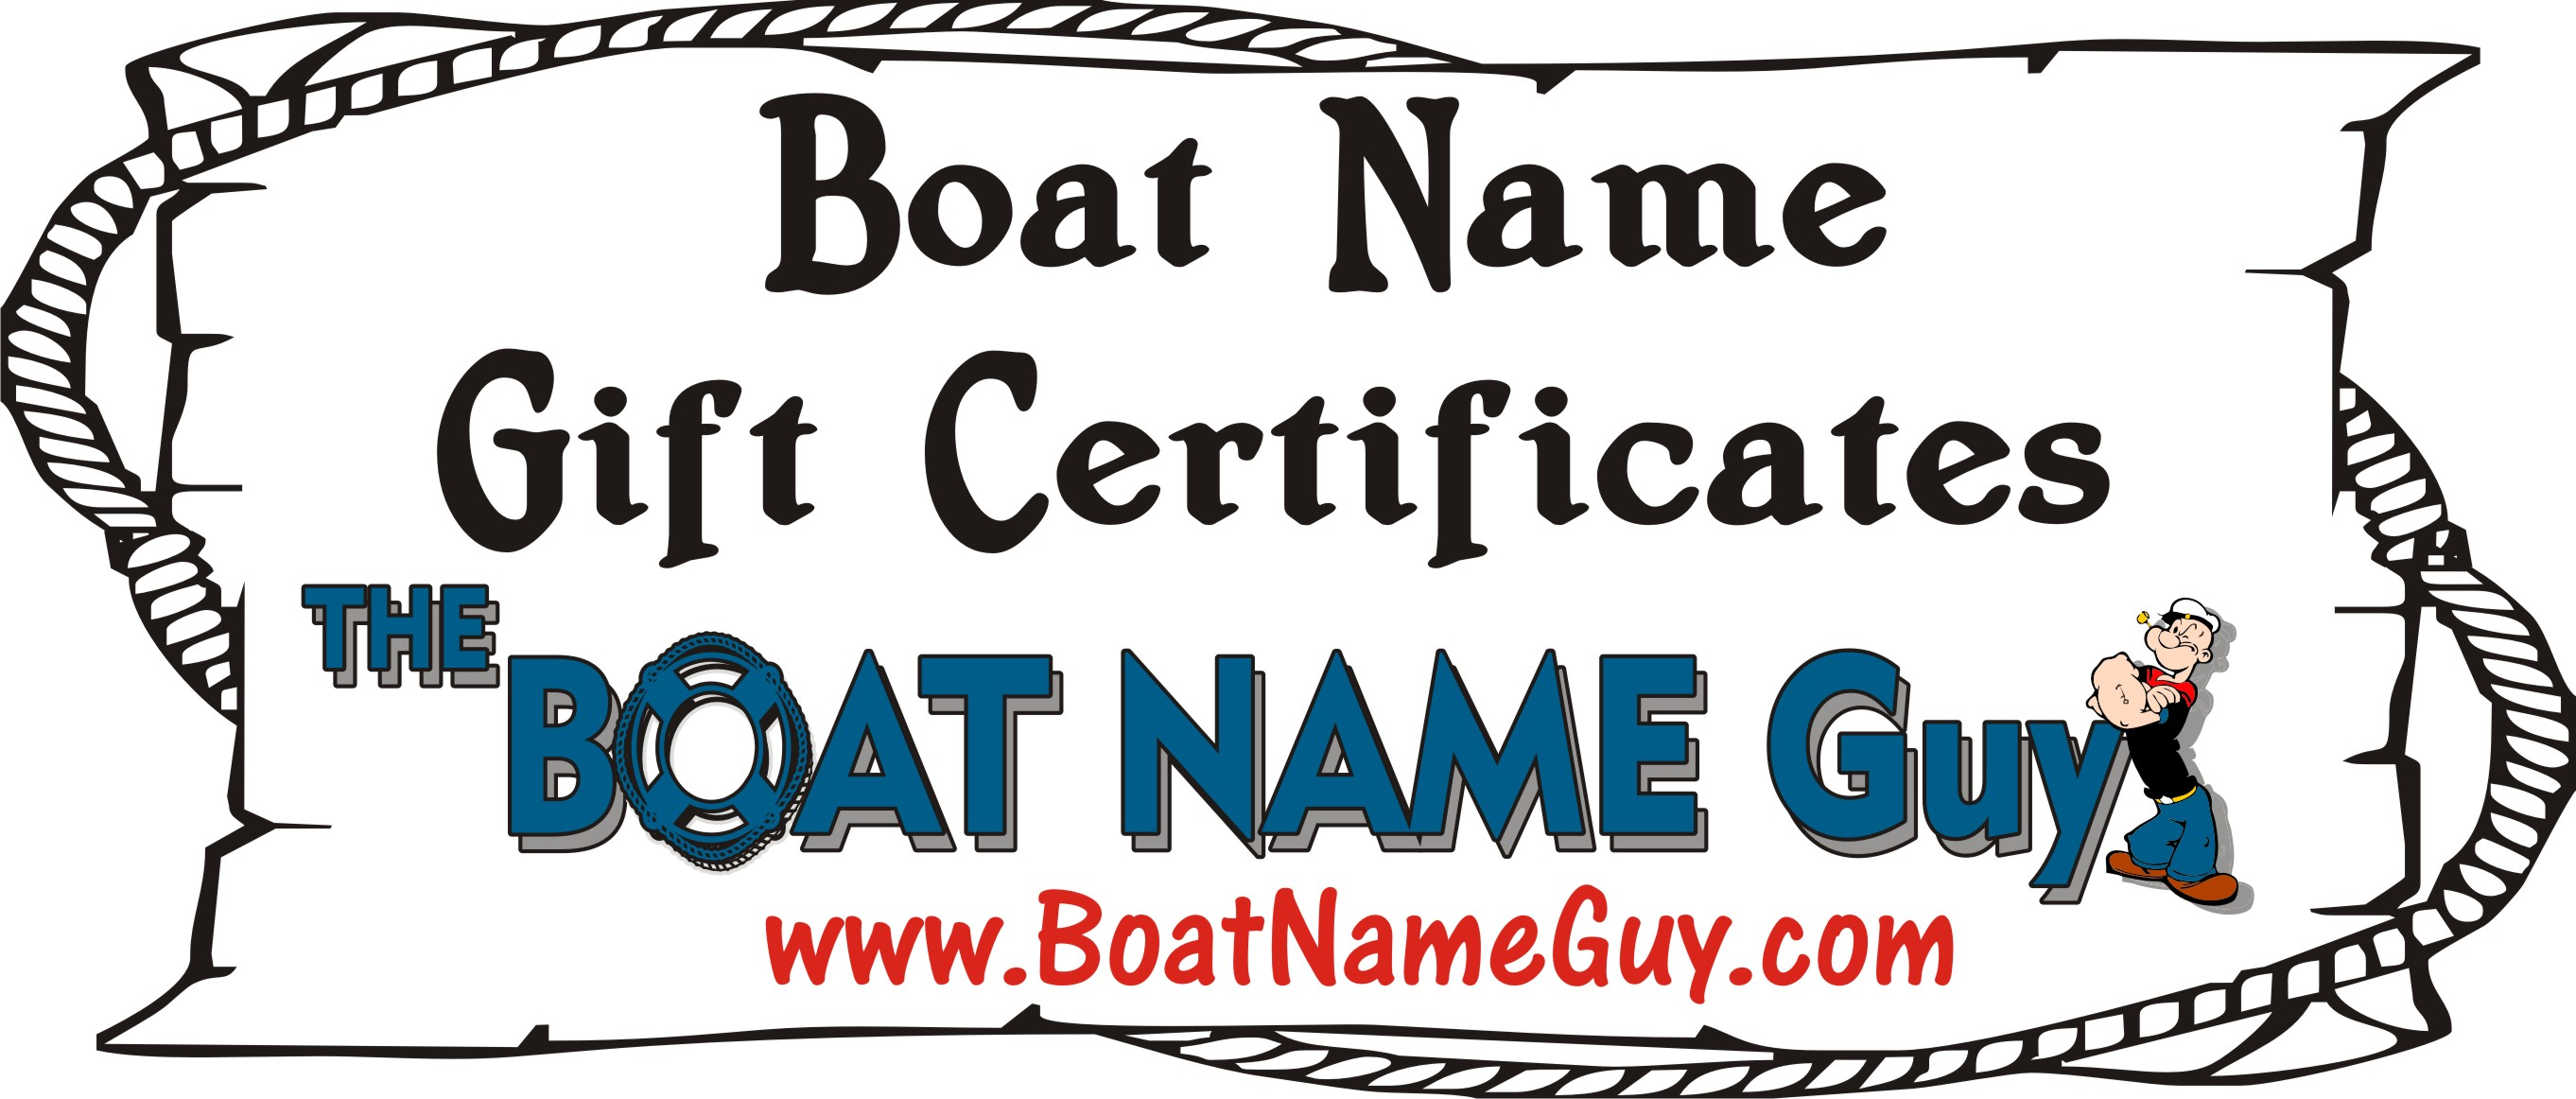 Perfect gift for the Captain or boat owner